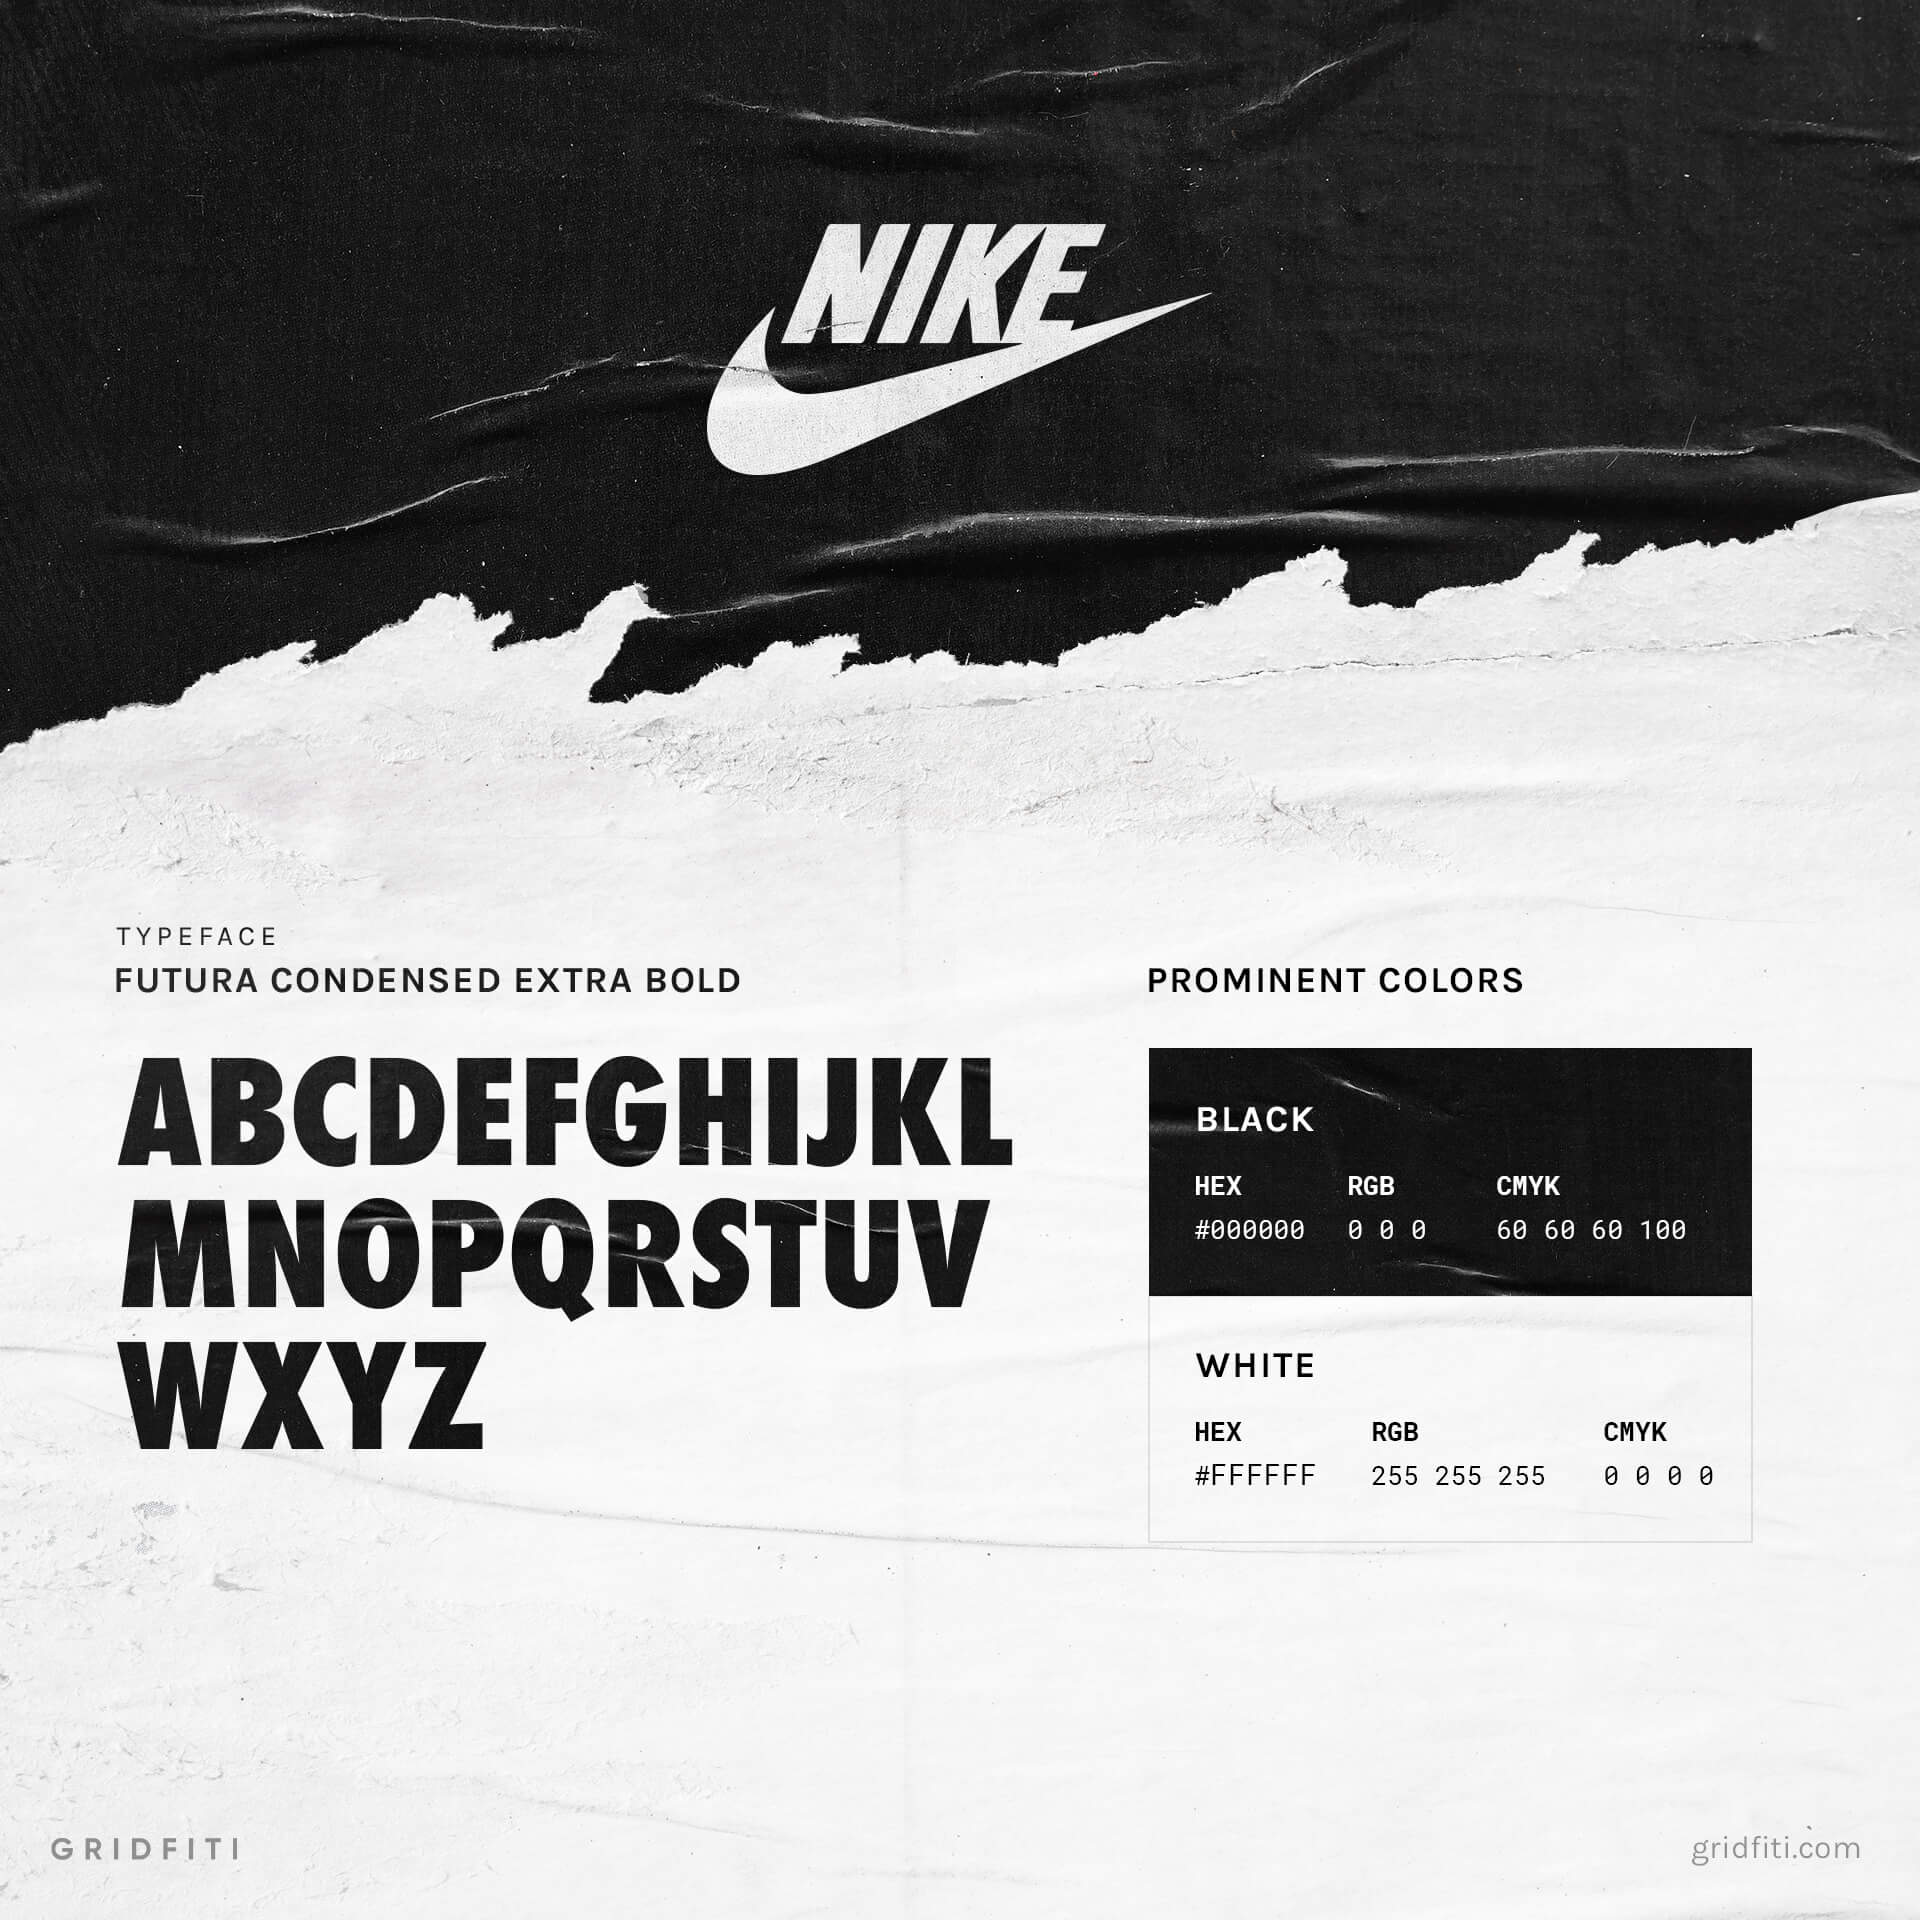 Nike Font Style & Brand Colors